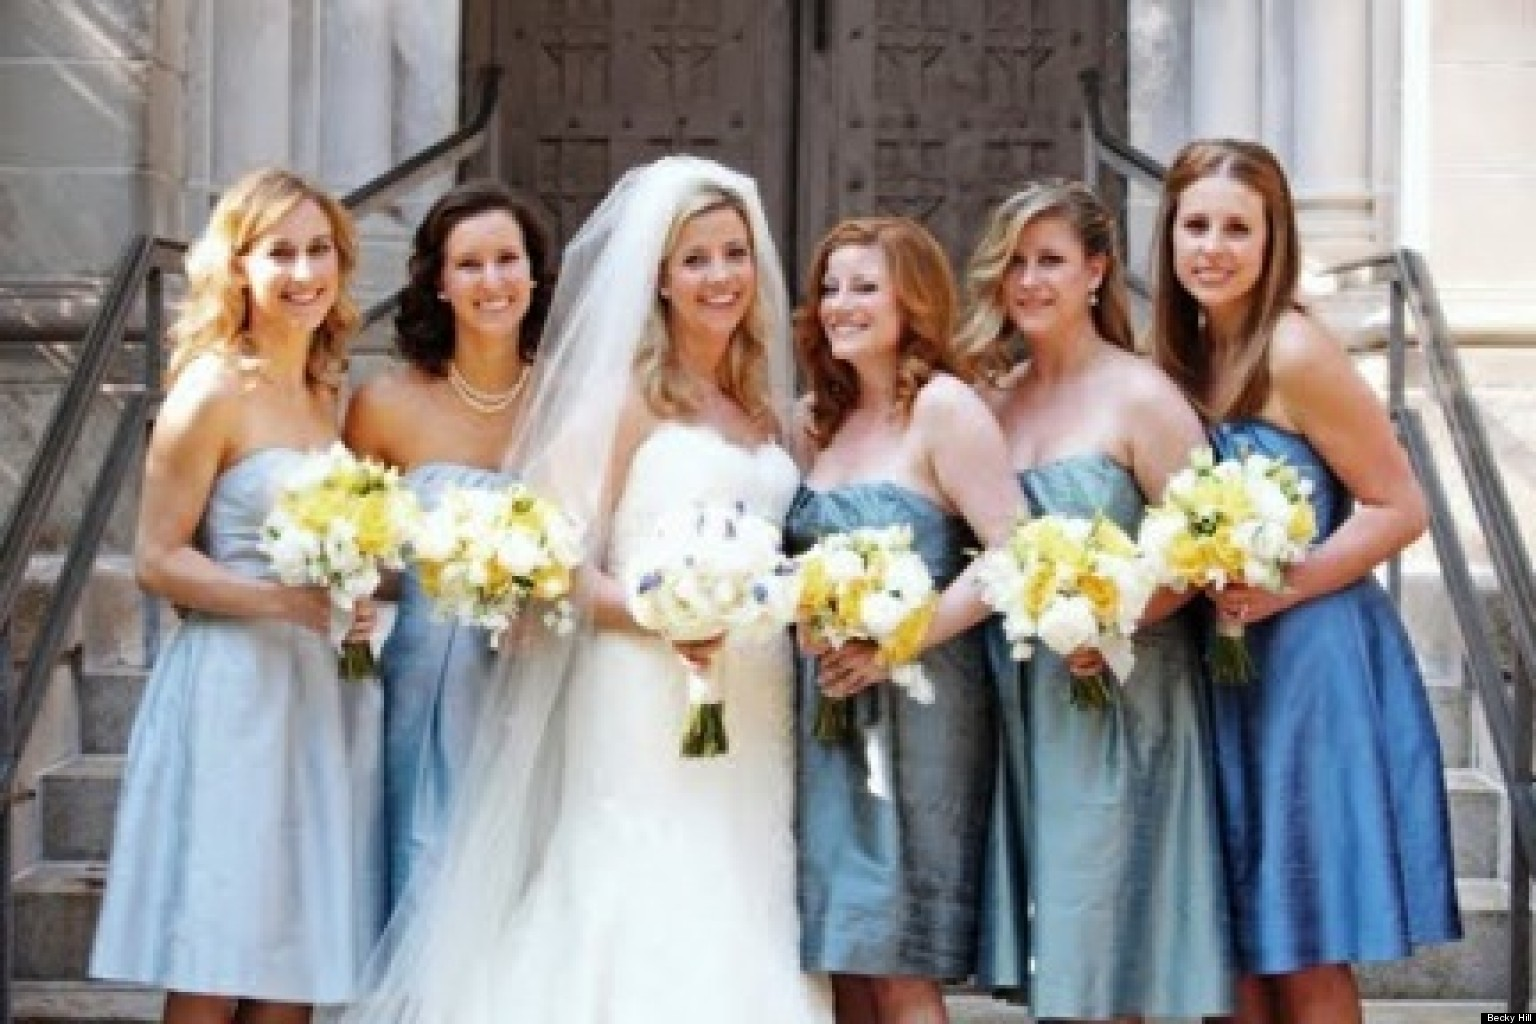 Should You Let Your Bridesmaids Choose Their Own Dresses